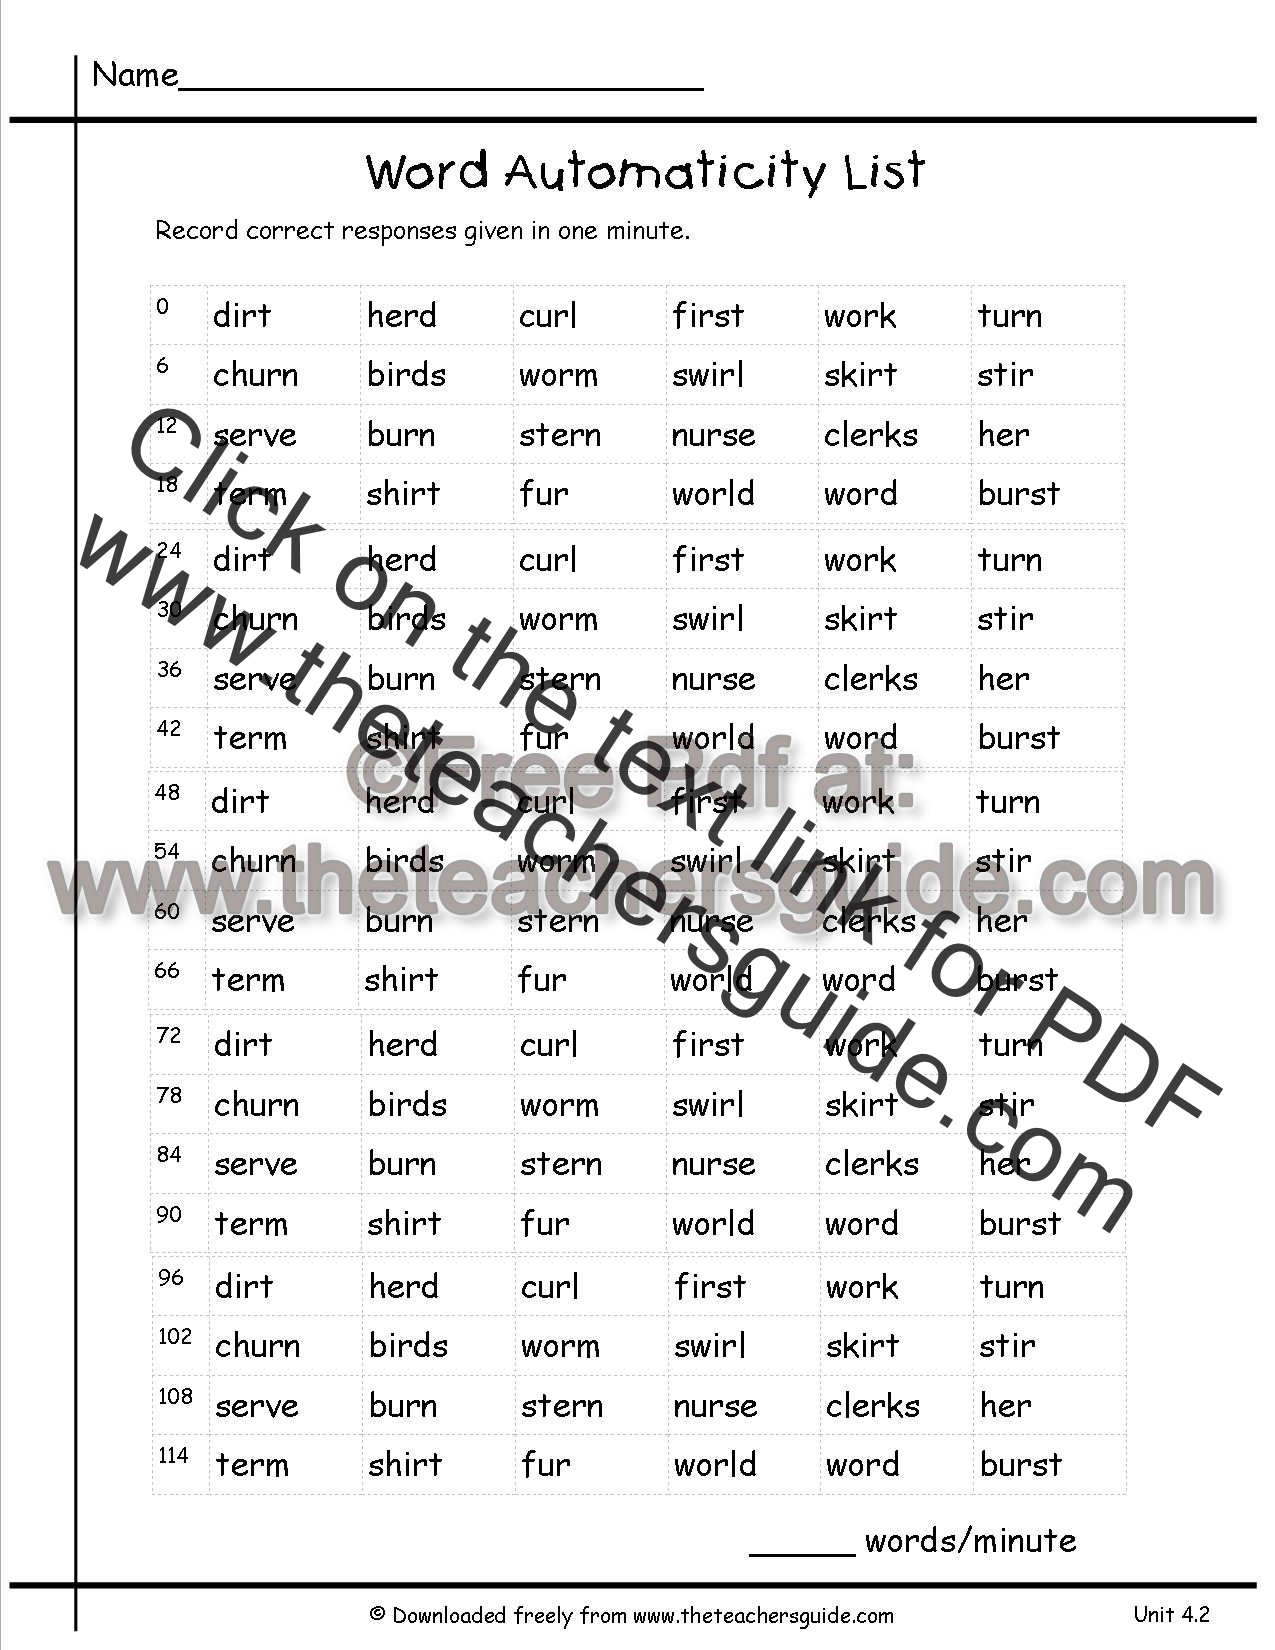 Worksheets Inflectional Endings Worksheet wonders second grade unit four week two printouts automaticity word list